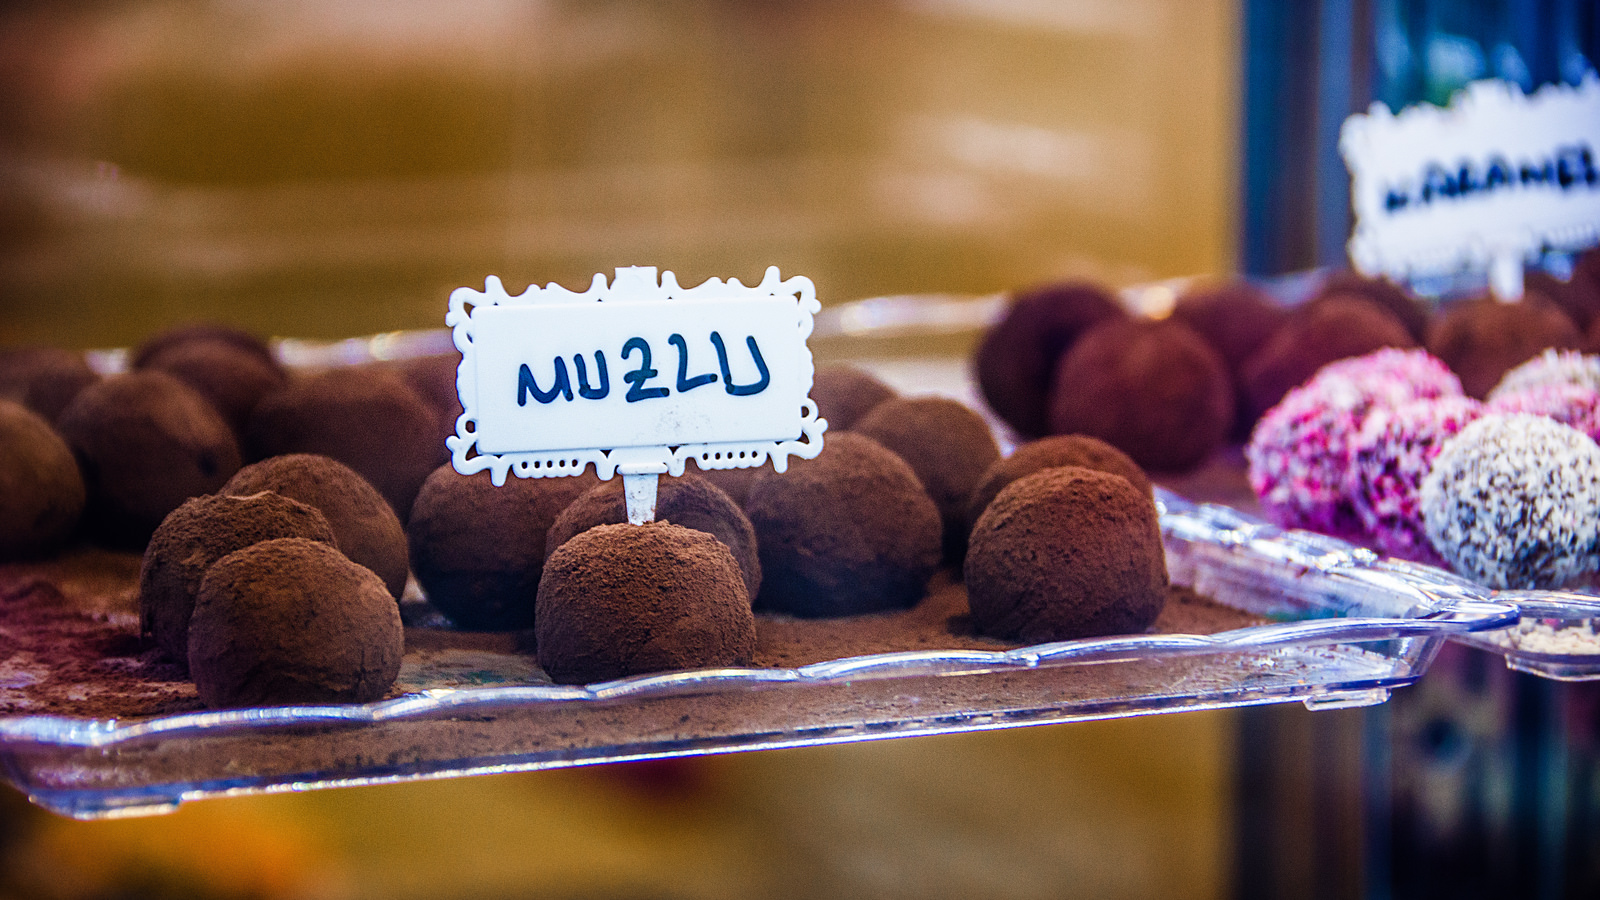 A photo of some chocolate truffles in a window display.